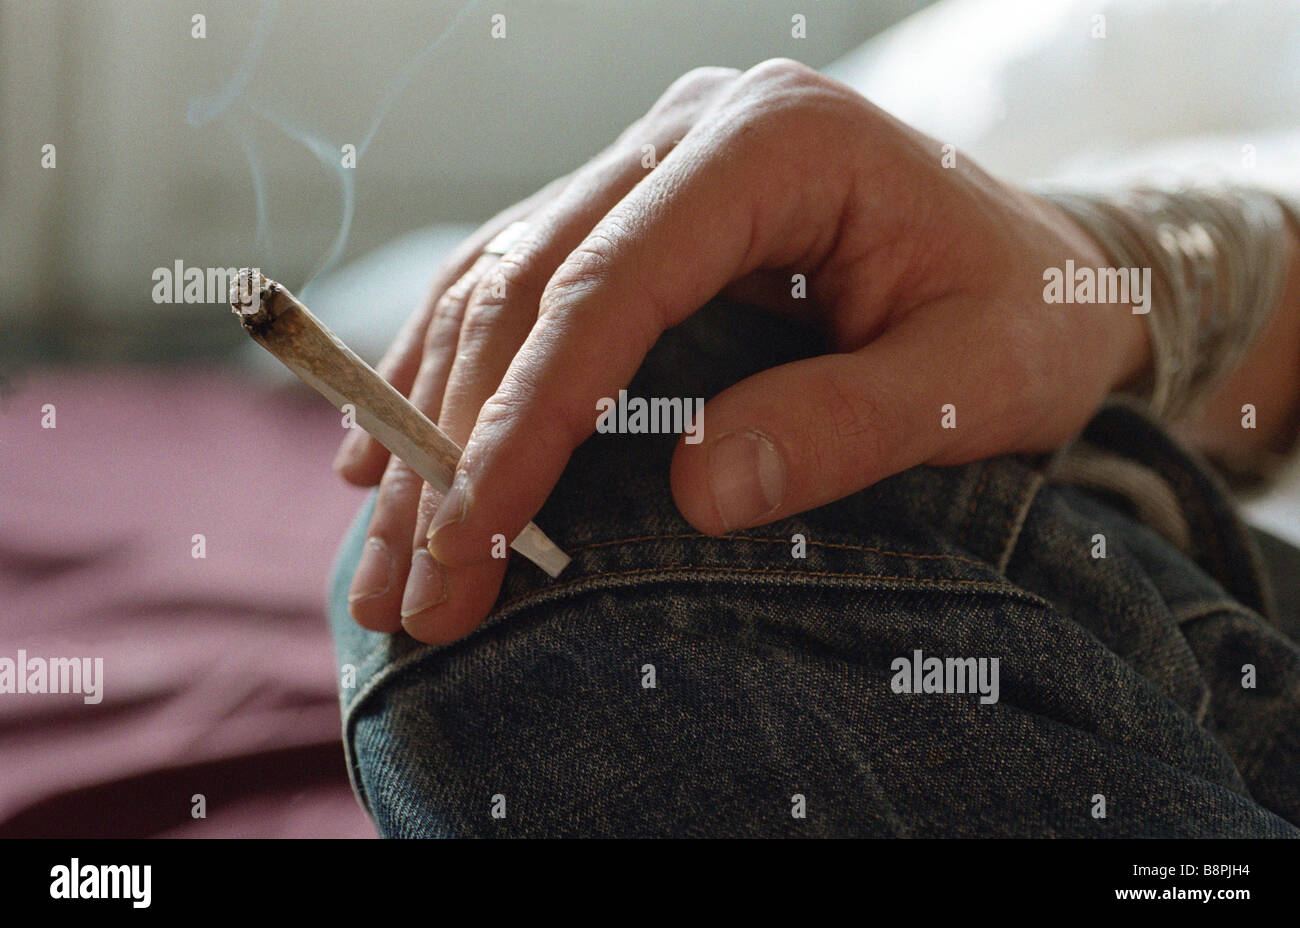 Hand holding smoking joint Stock Photo